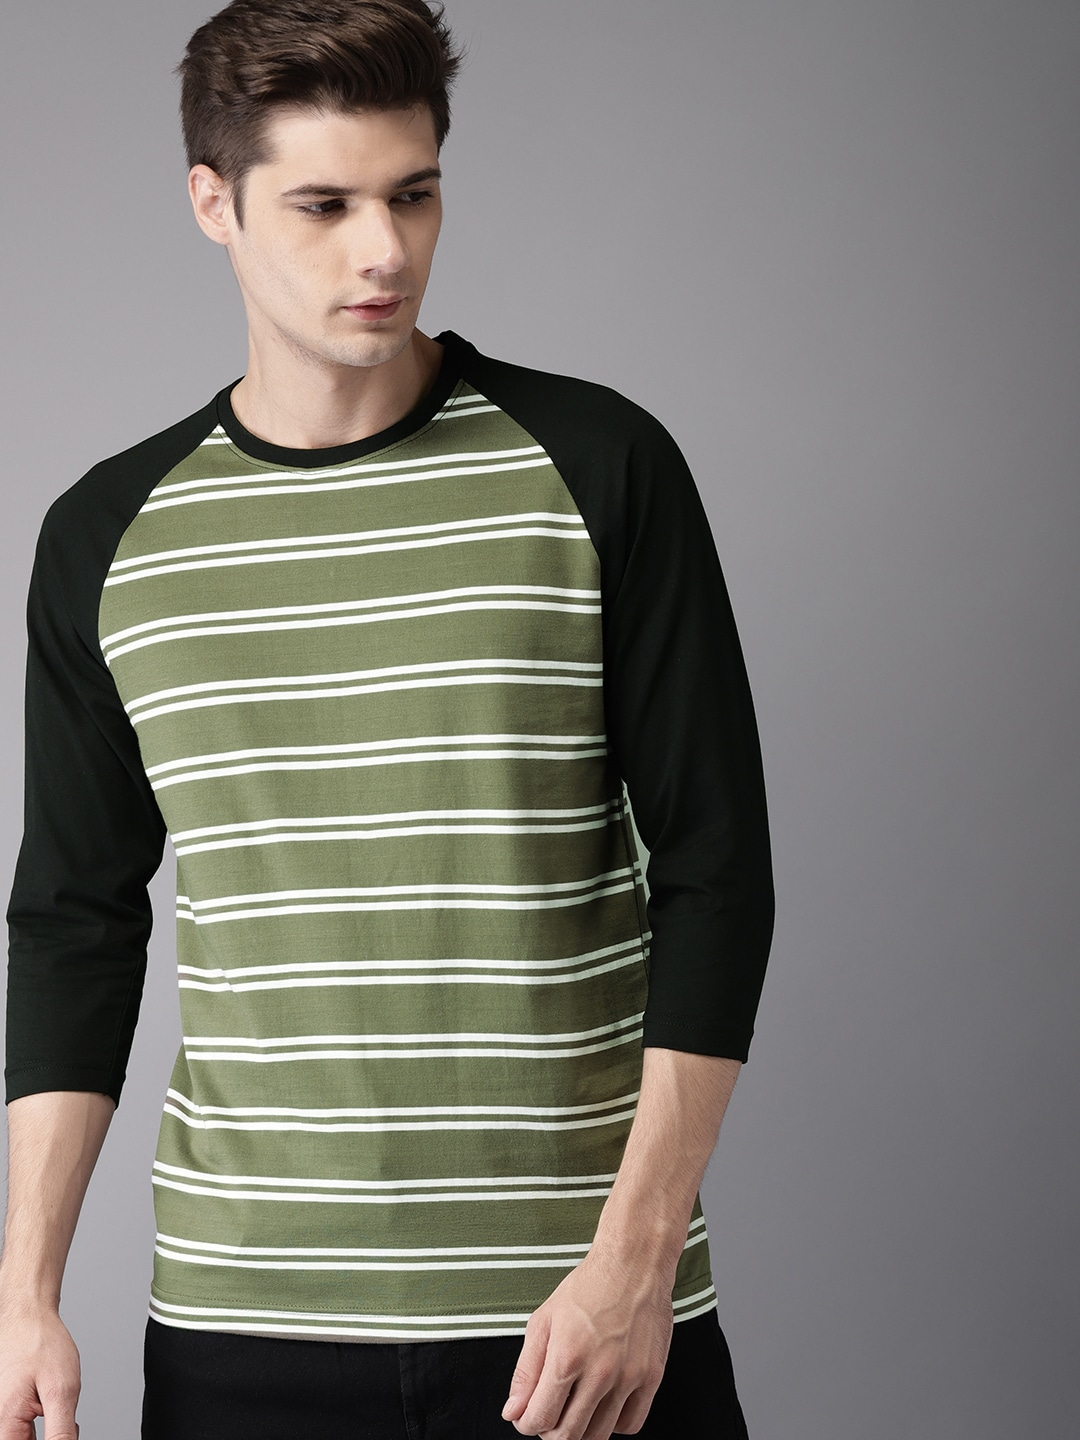 Buy HERE&NOW Olive Green Striped Round Neck Men's T-shirt At Best Price